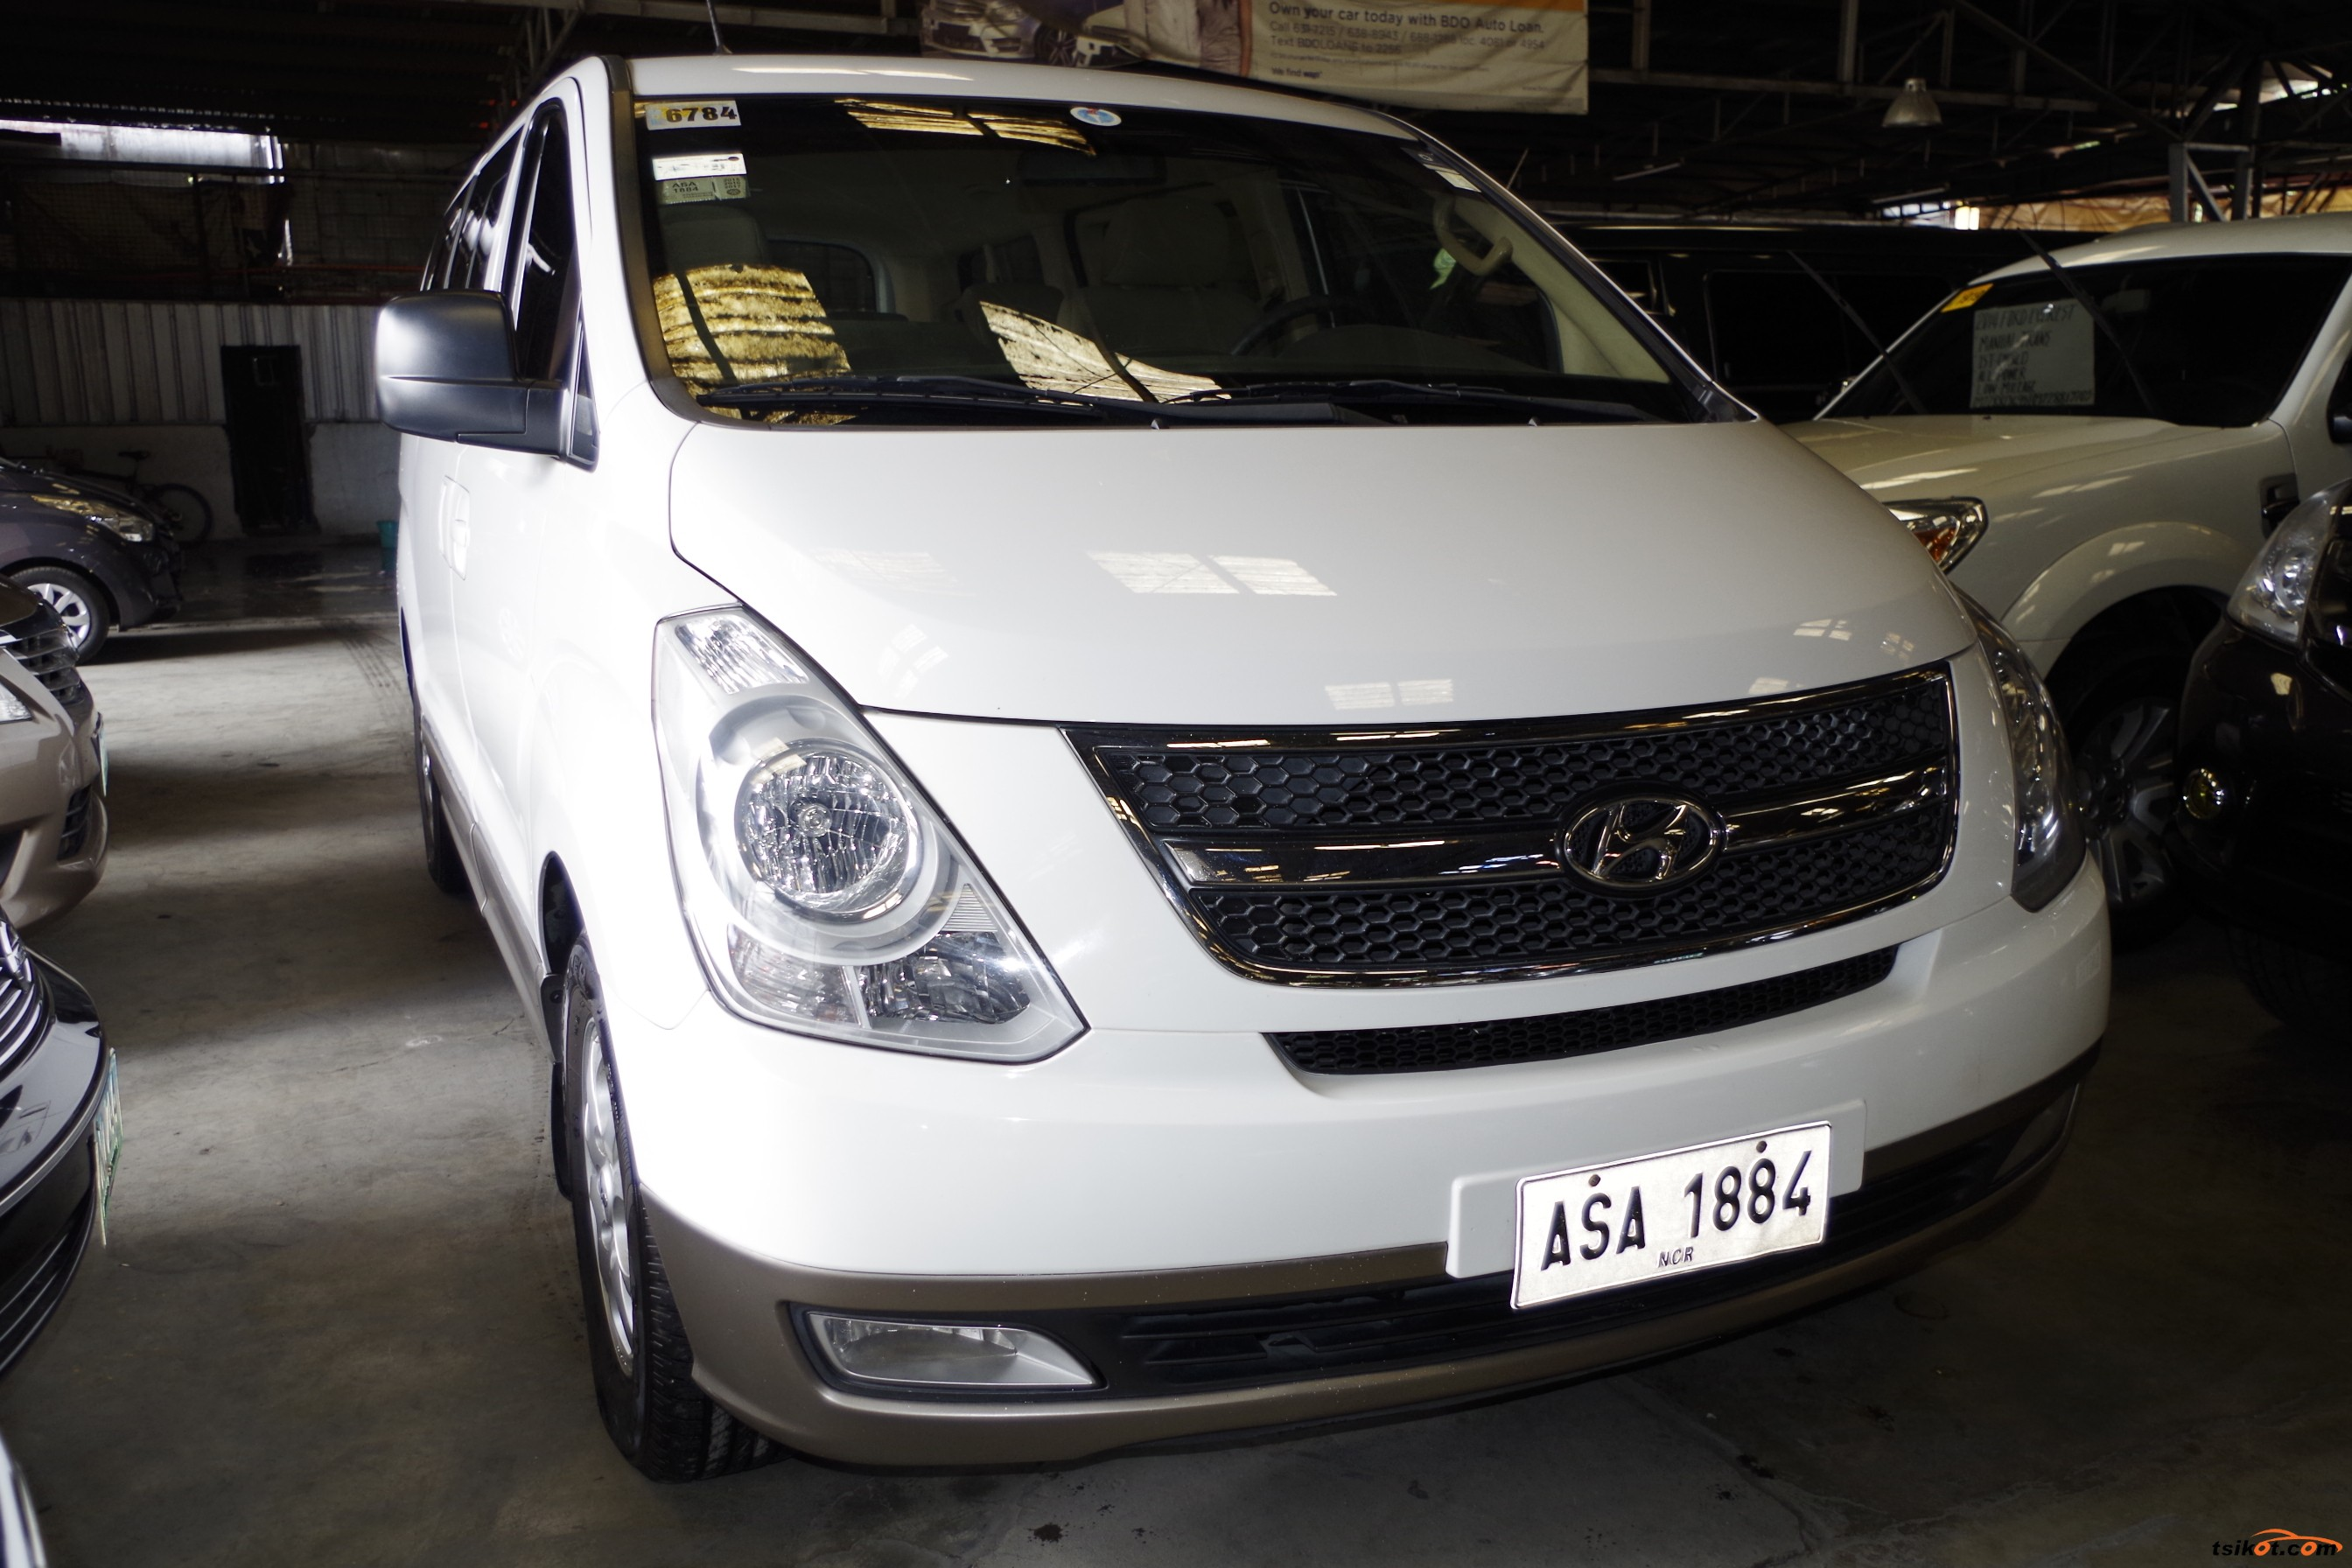 Hyundai Grand Starex 2015 - Car for Sale Metro Manila